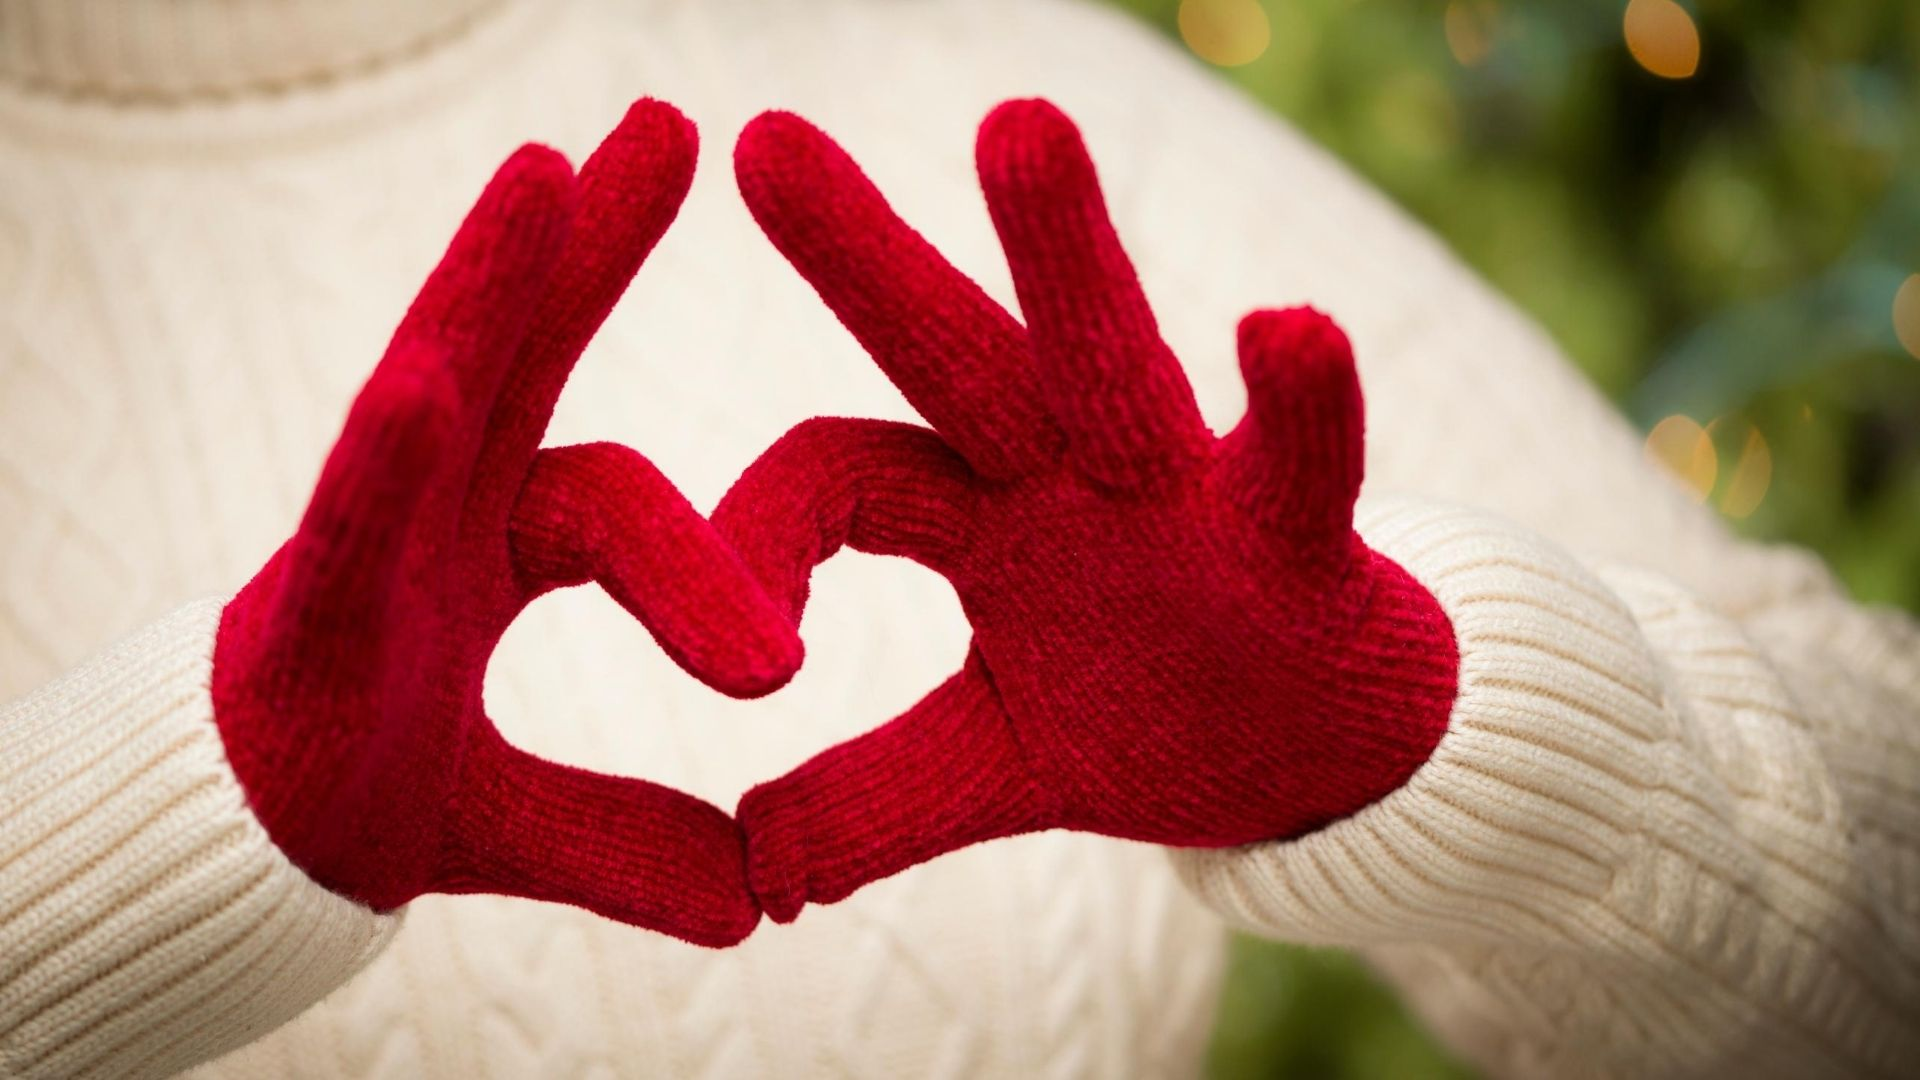 Woman wearing  red Christmas mittens.